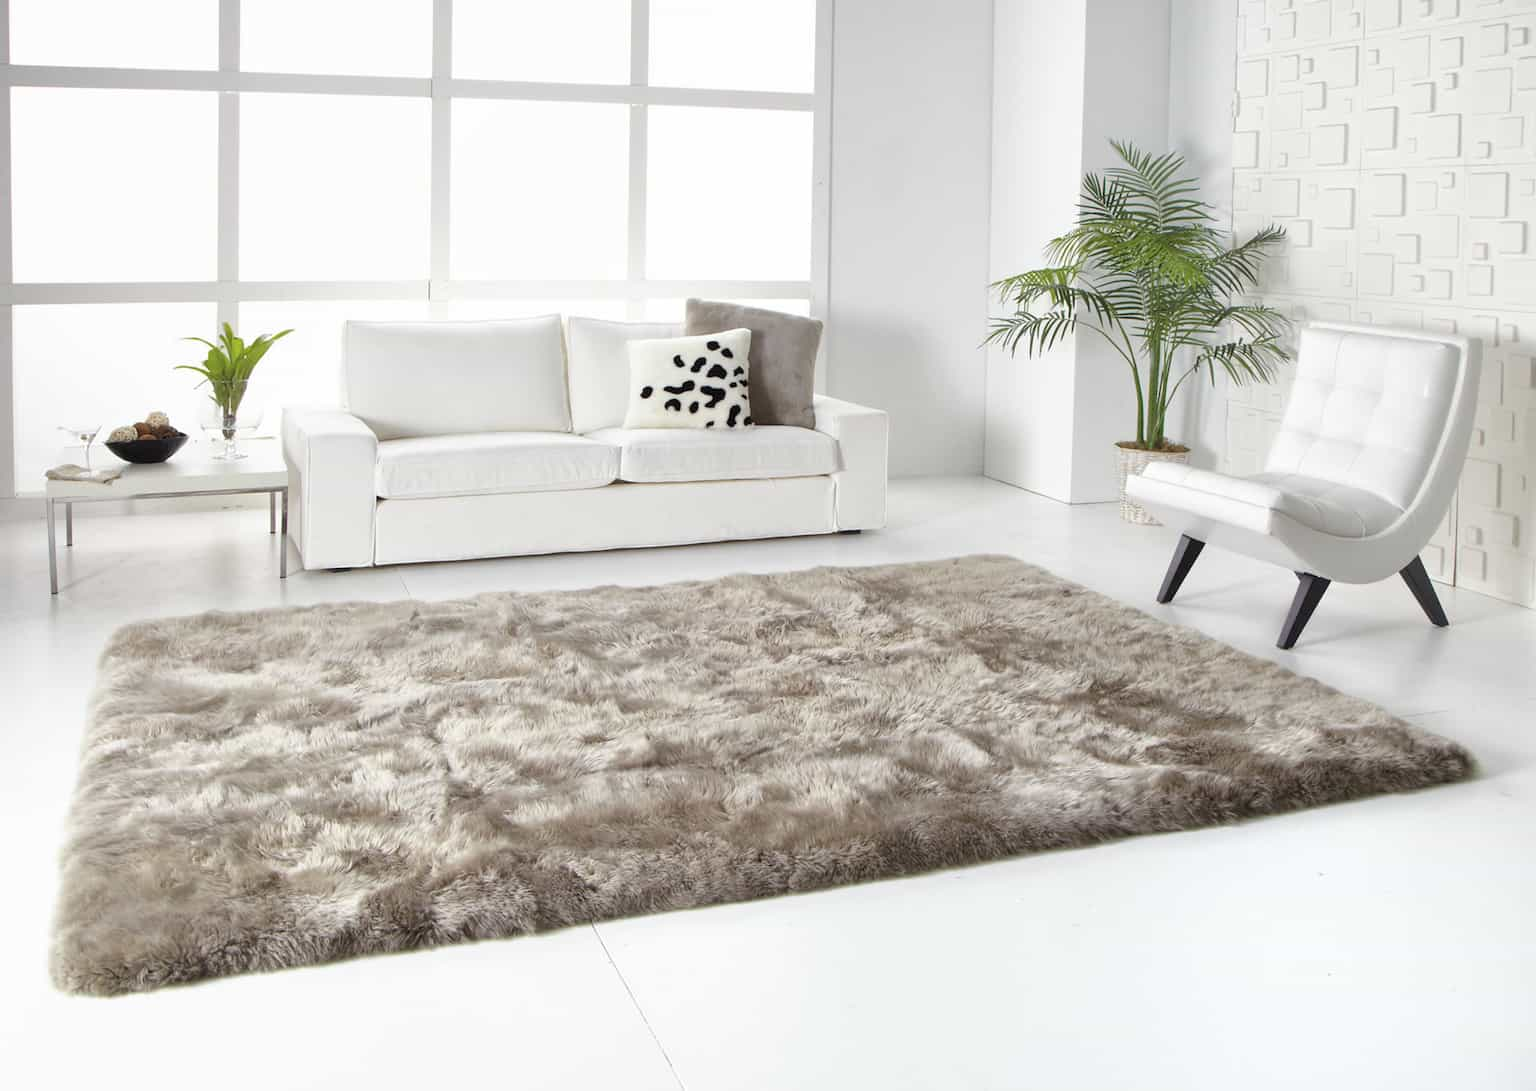 15 Ideas To Decorate With A Sheepskin Rug Custom Home Design